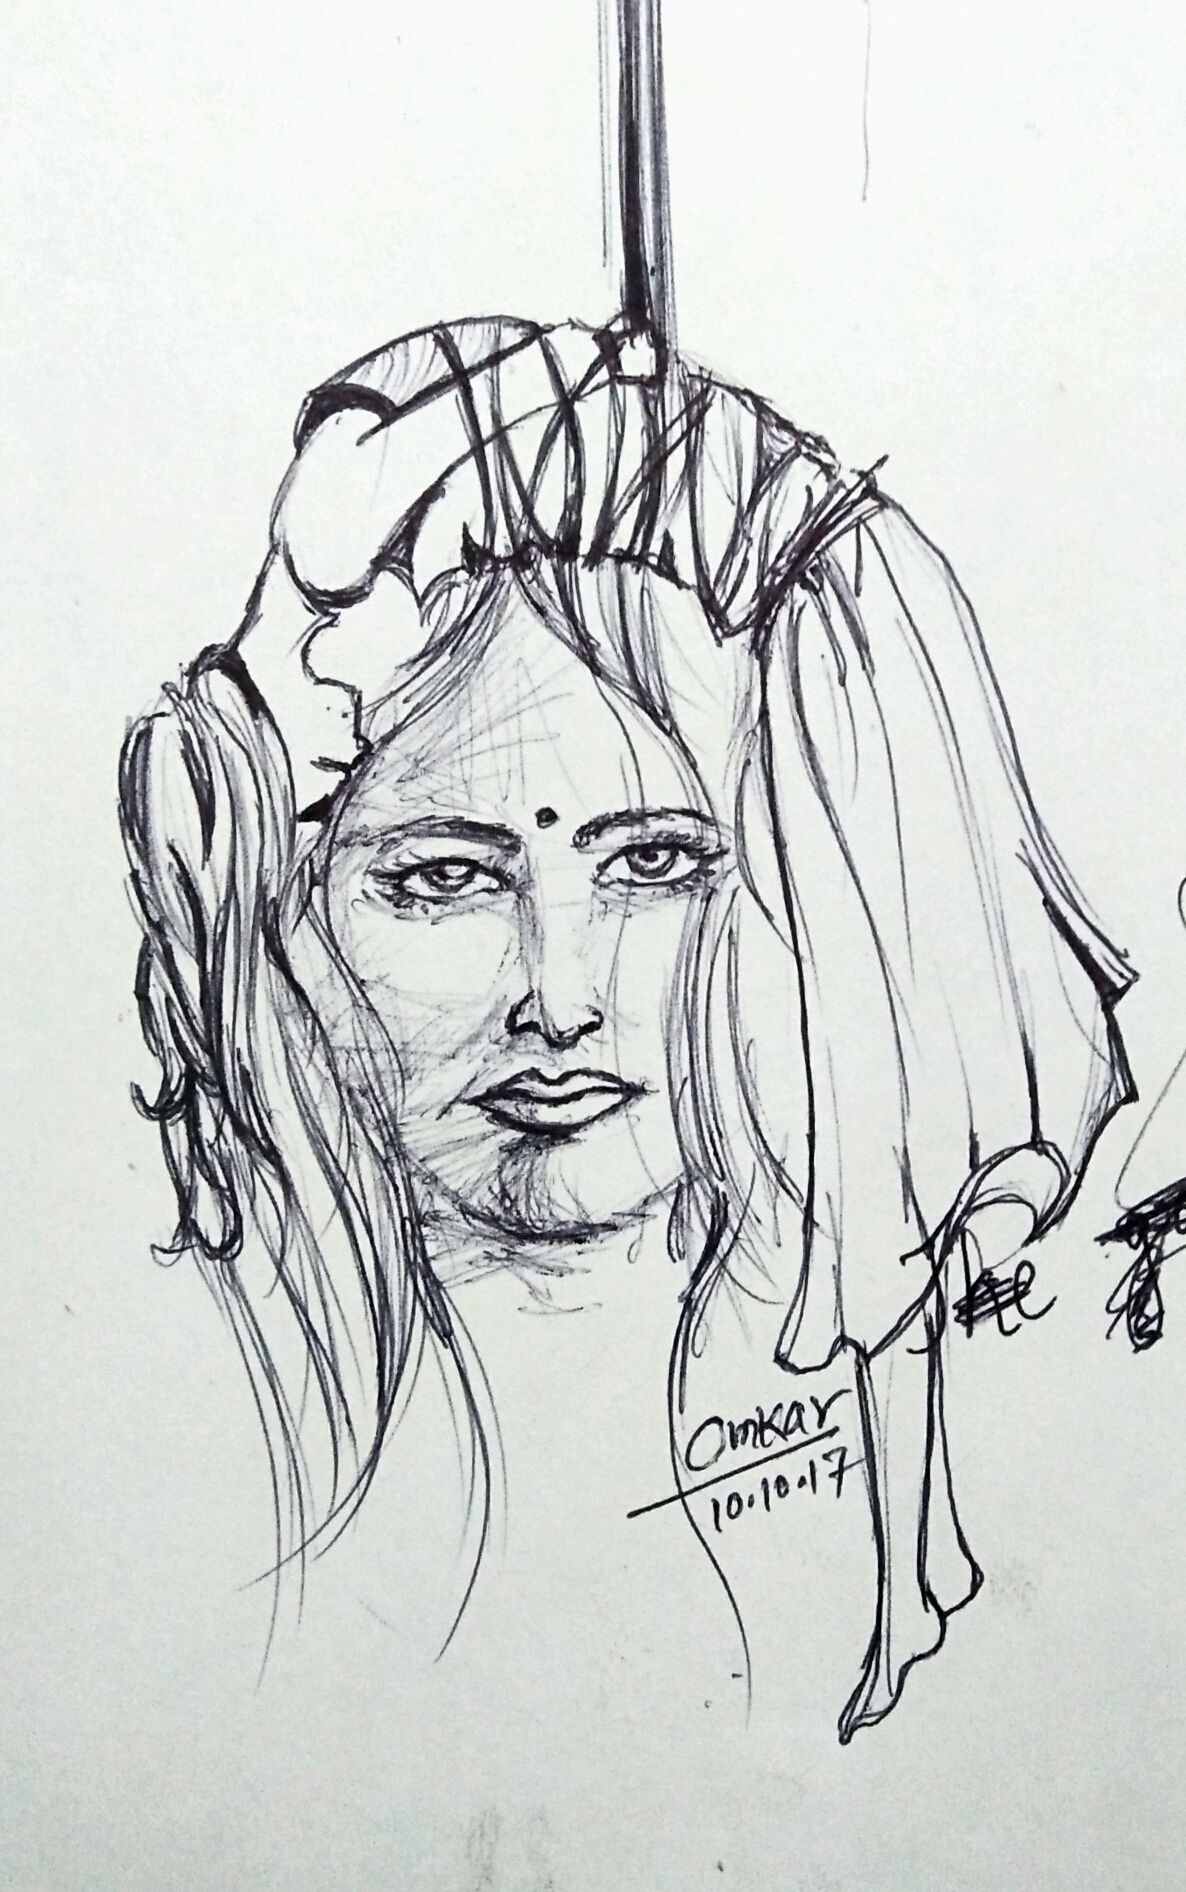 Ball Point Pen Sketch Omkar Khochare Pen Sketch Sketches Drawings